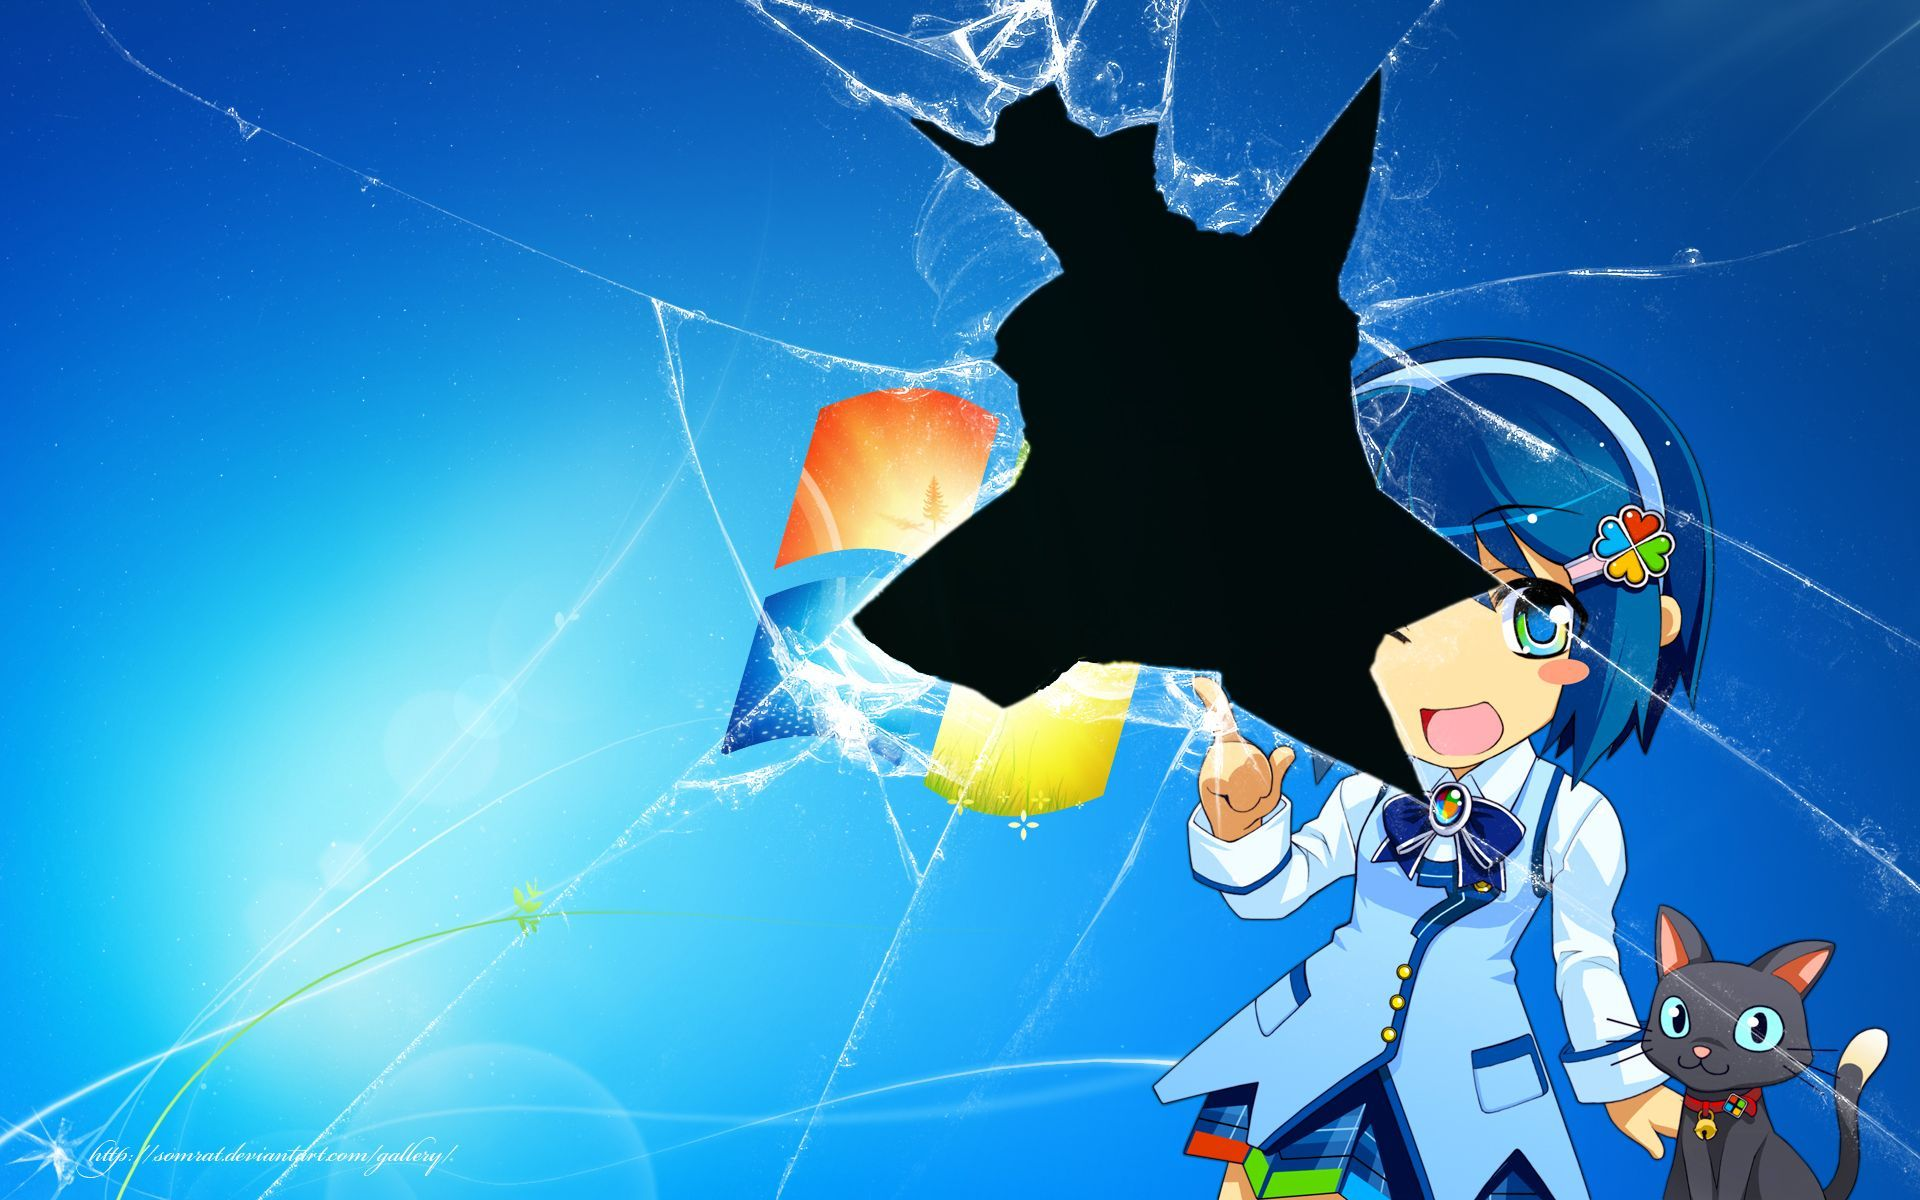 1920x1200 Windows-7-Anime-Wallpapers-Gallery-(39-Plus)-PIC-WPW4010858 ...